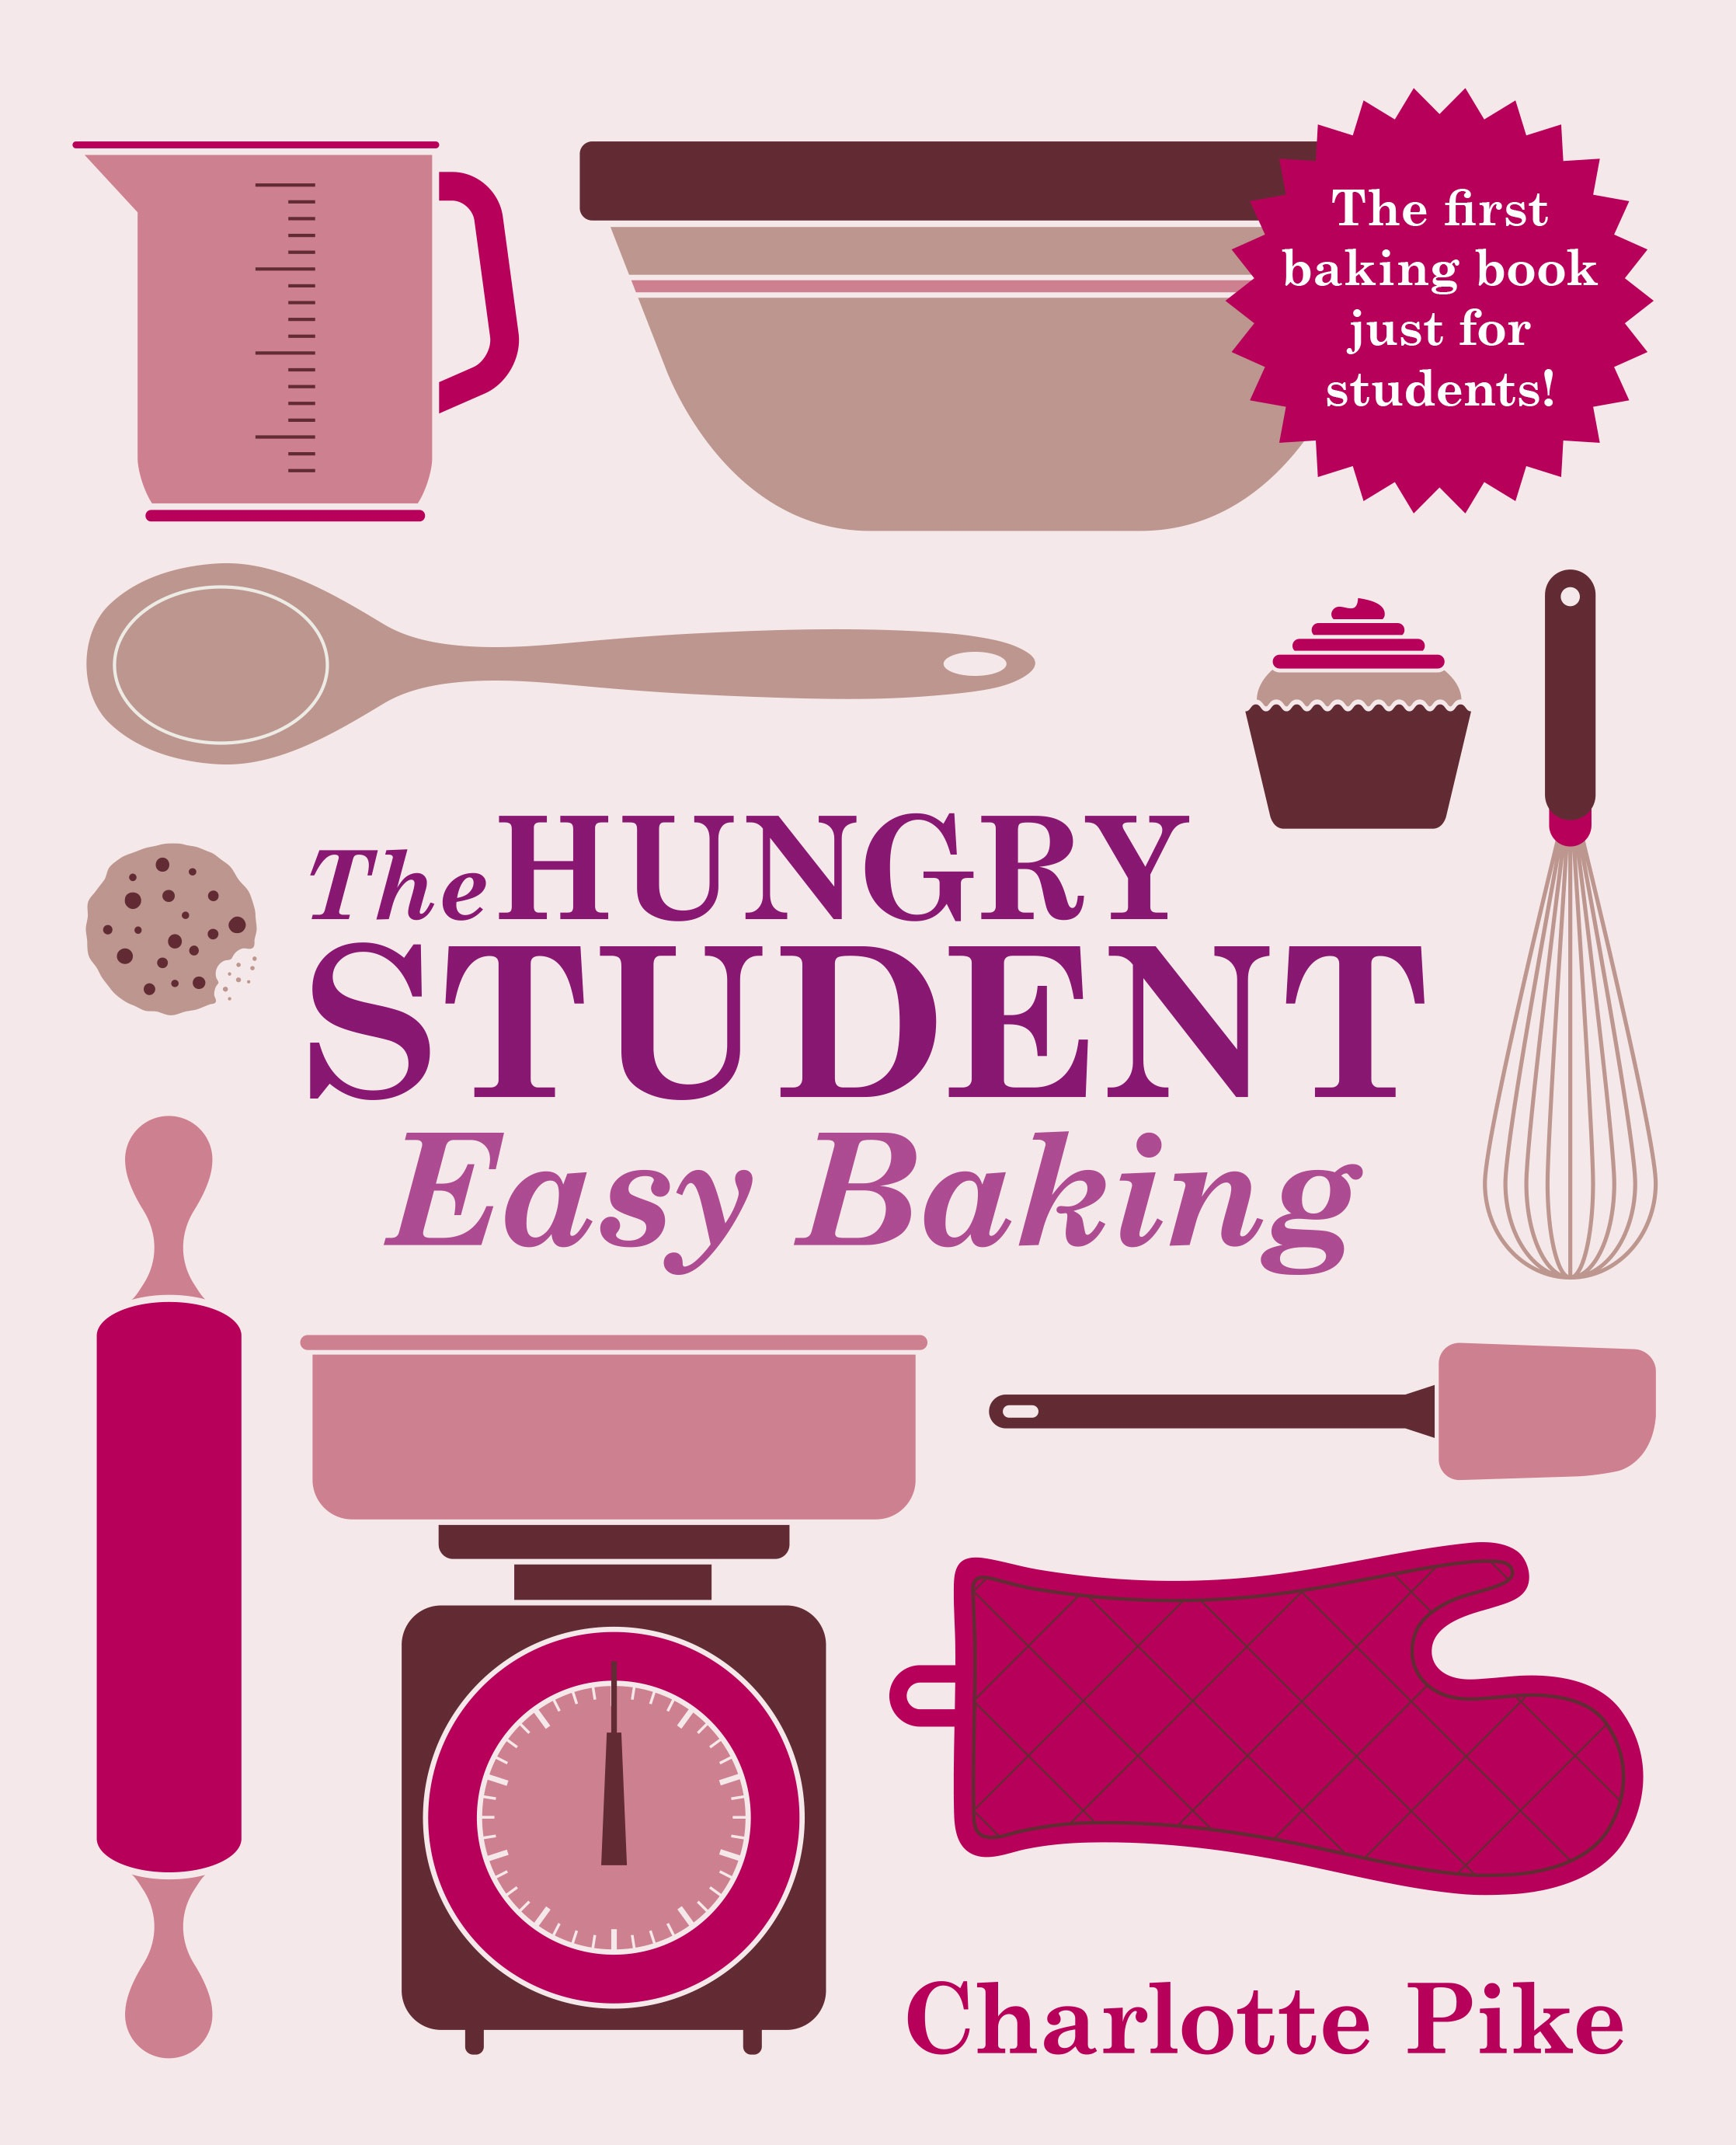 The Hungry Student — The Hungry Student Cookbooks.